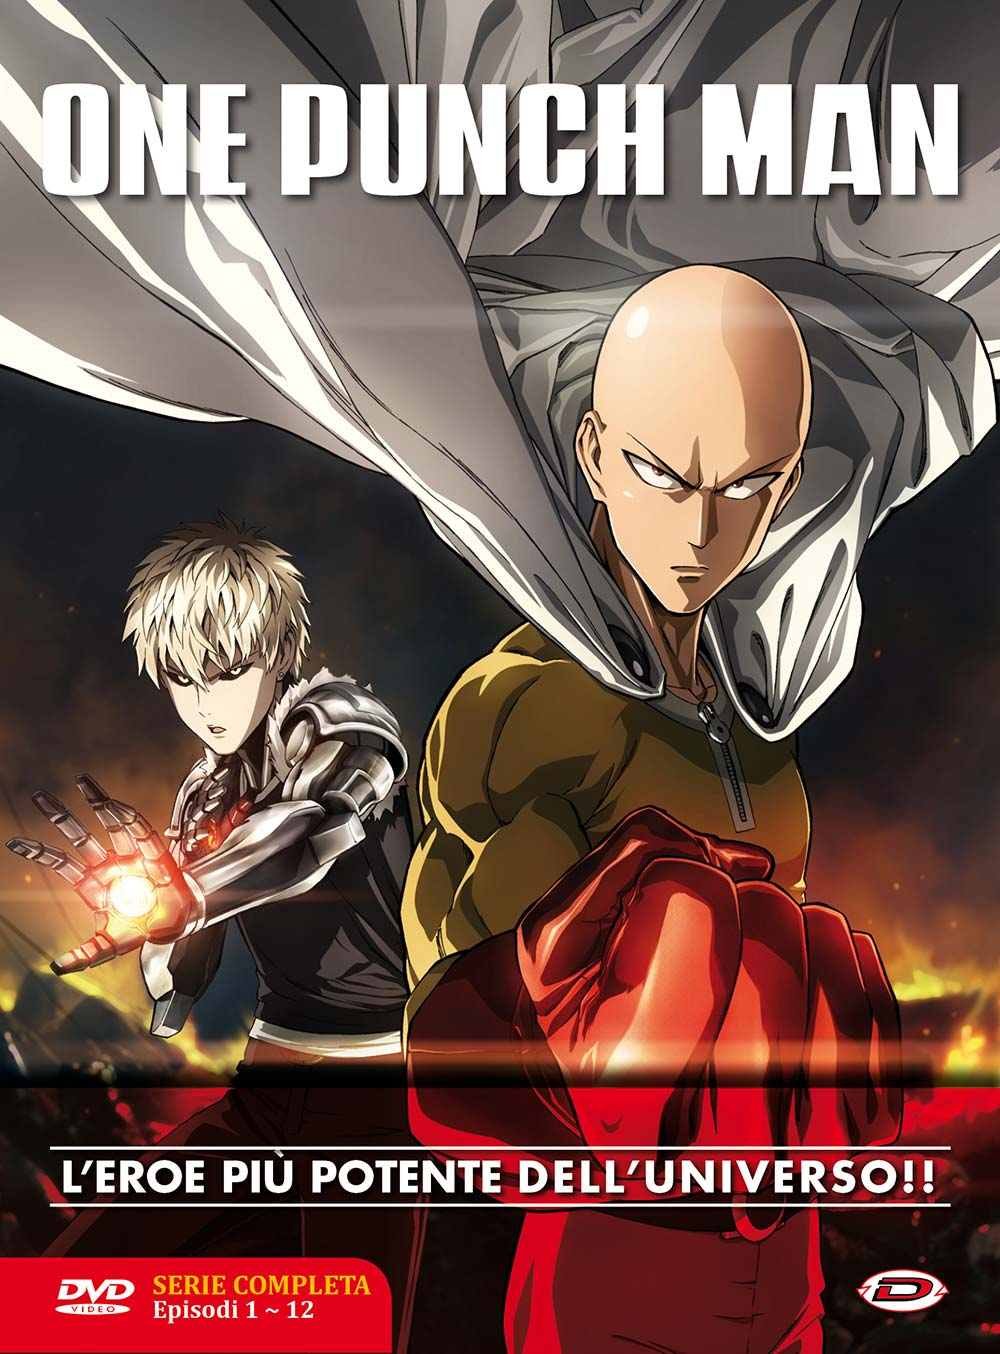 COF.ONE PUNCH MAN - THE COMPLETE SERIES BOX (EPS 01-12) (3 DVD)